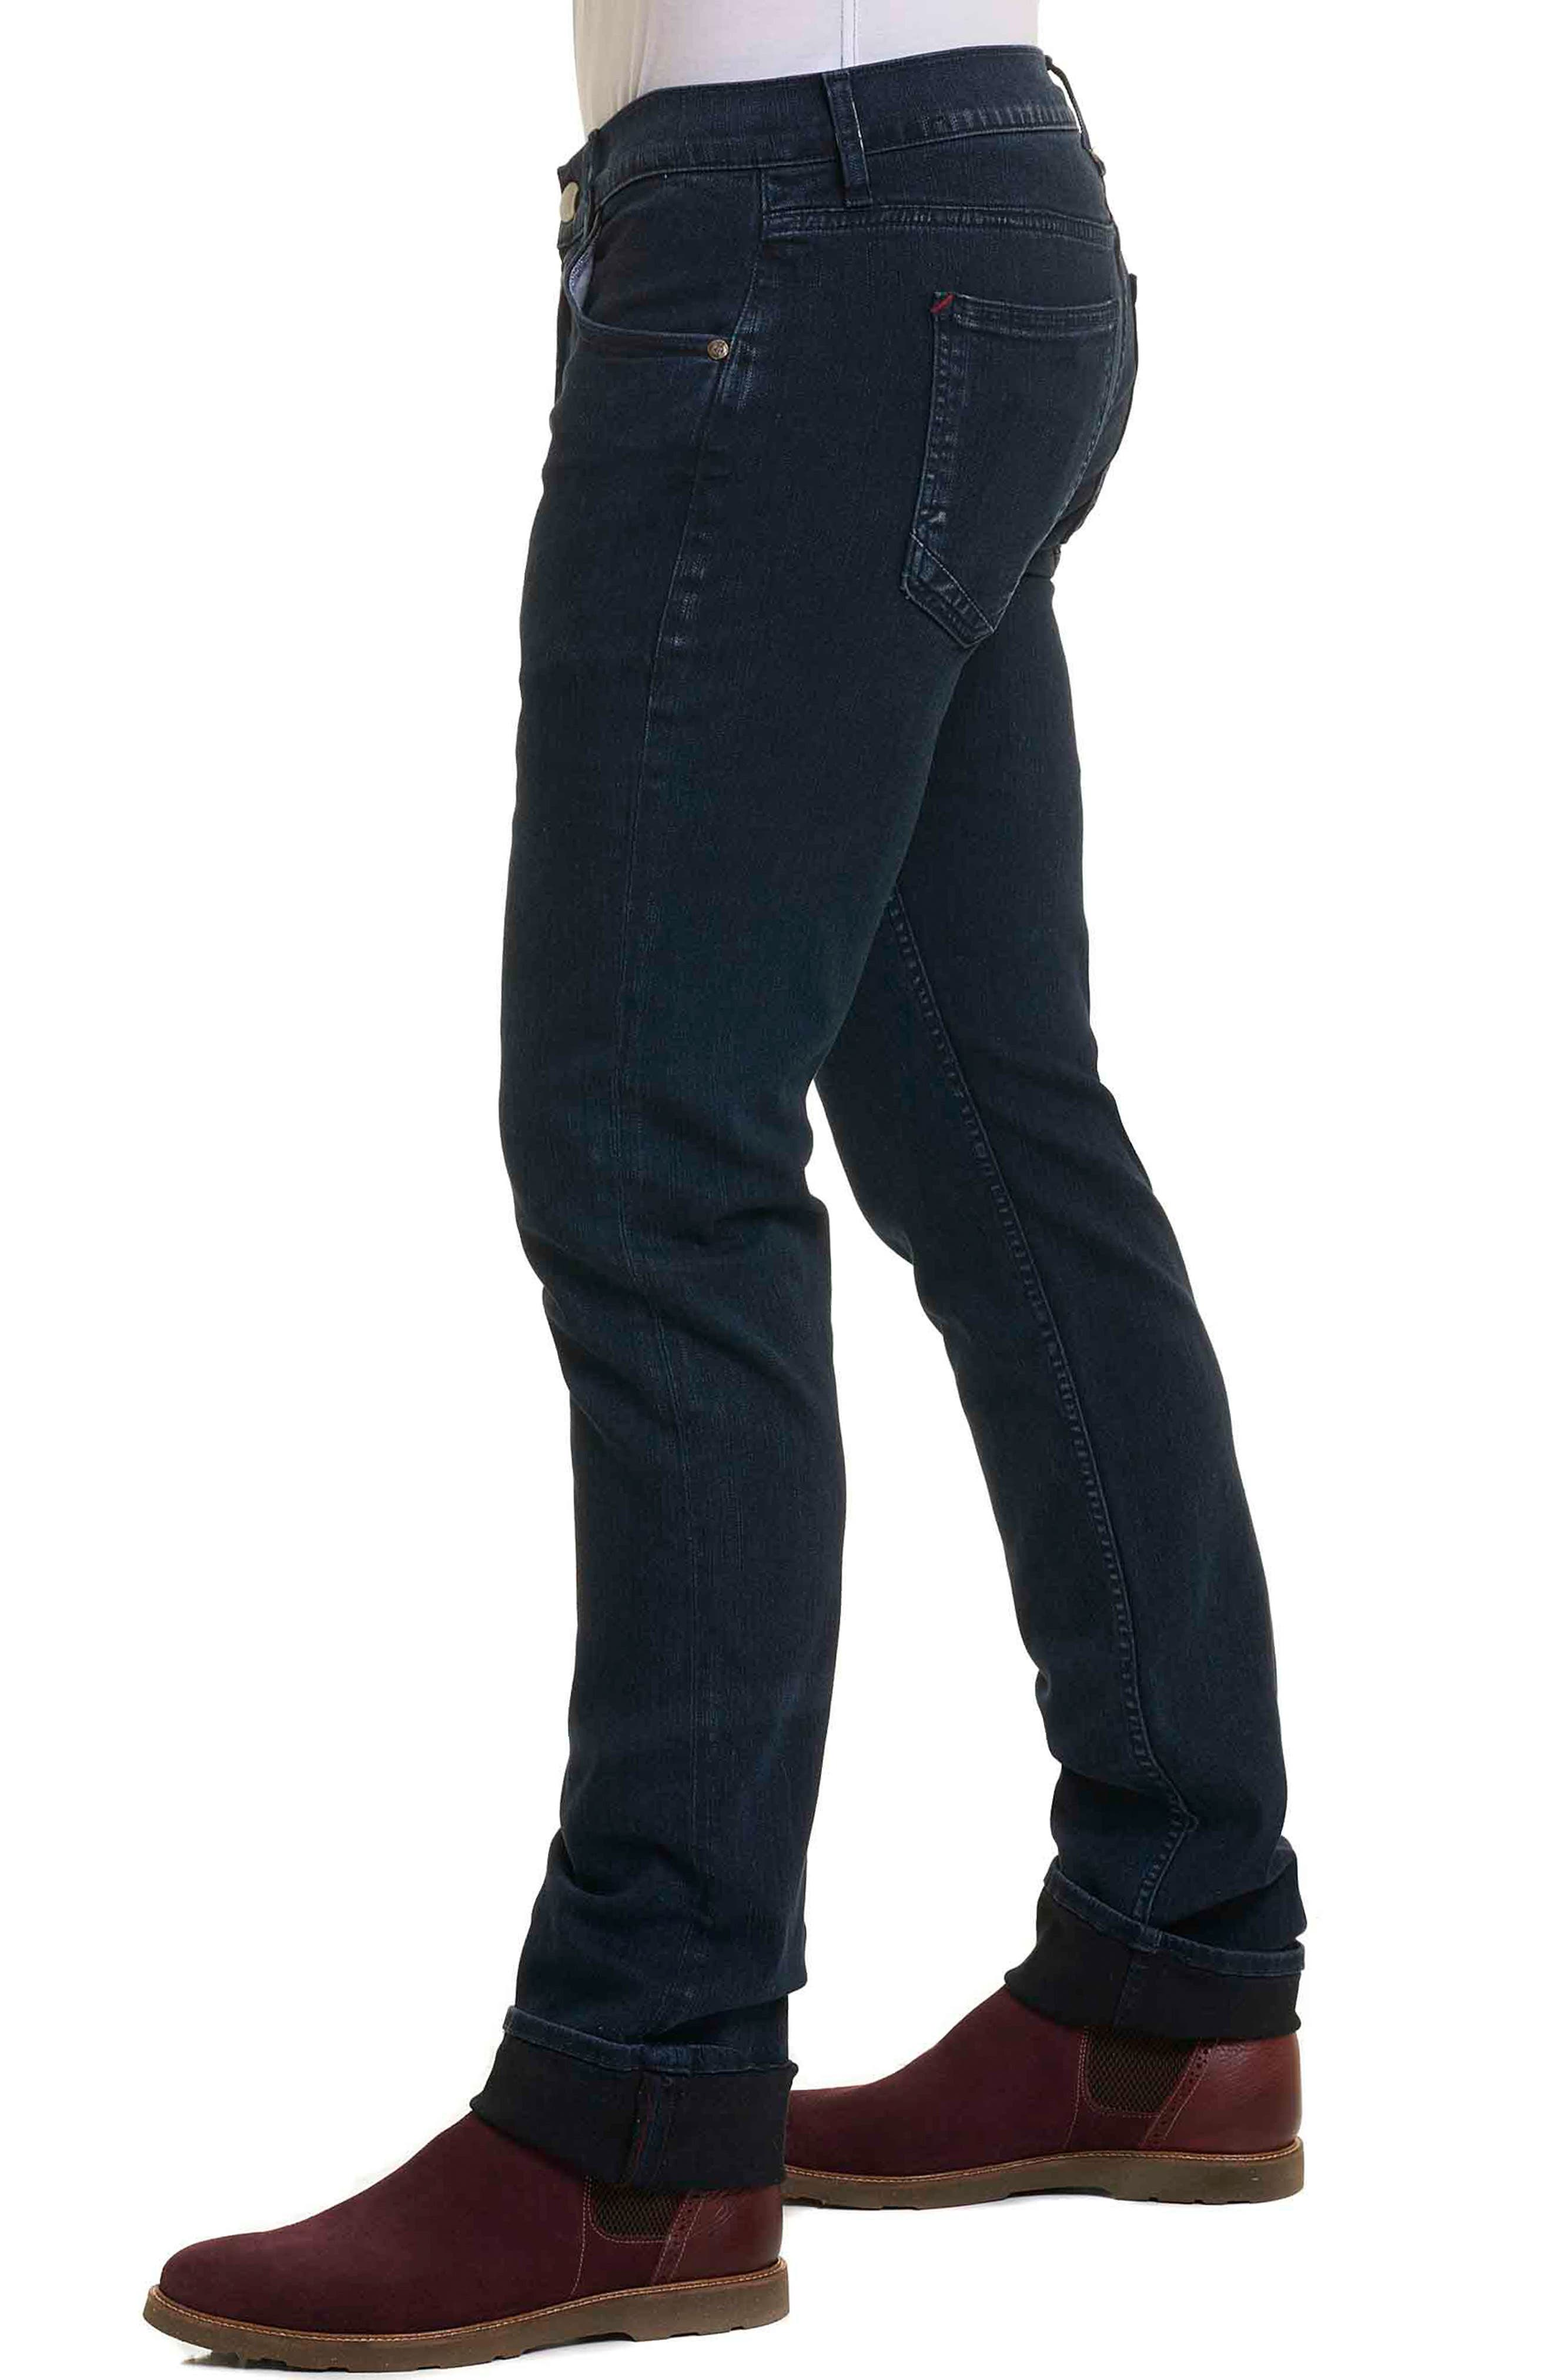 Adapt Classic Fit Jeans,                             Alternate thumbnail 3, color,                             Indigo